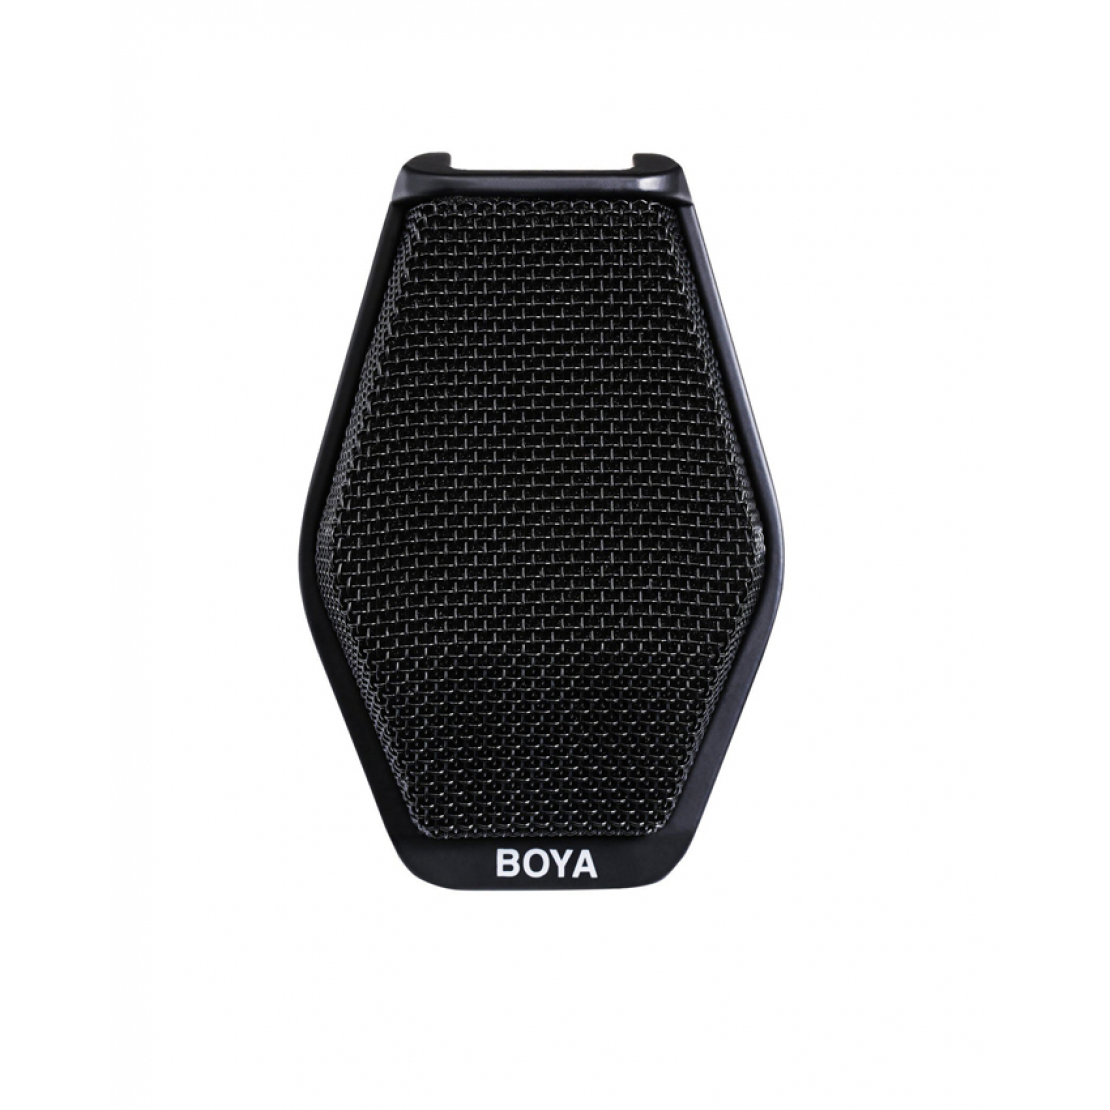 Boya BY-MC2 USB Desktop Conference Mic- Windows Mac Laptop